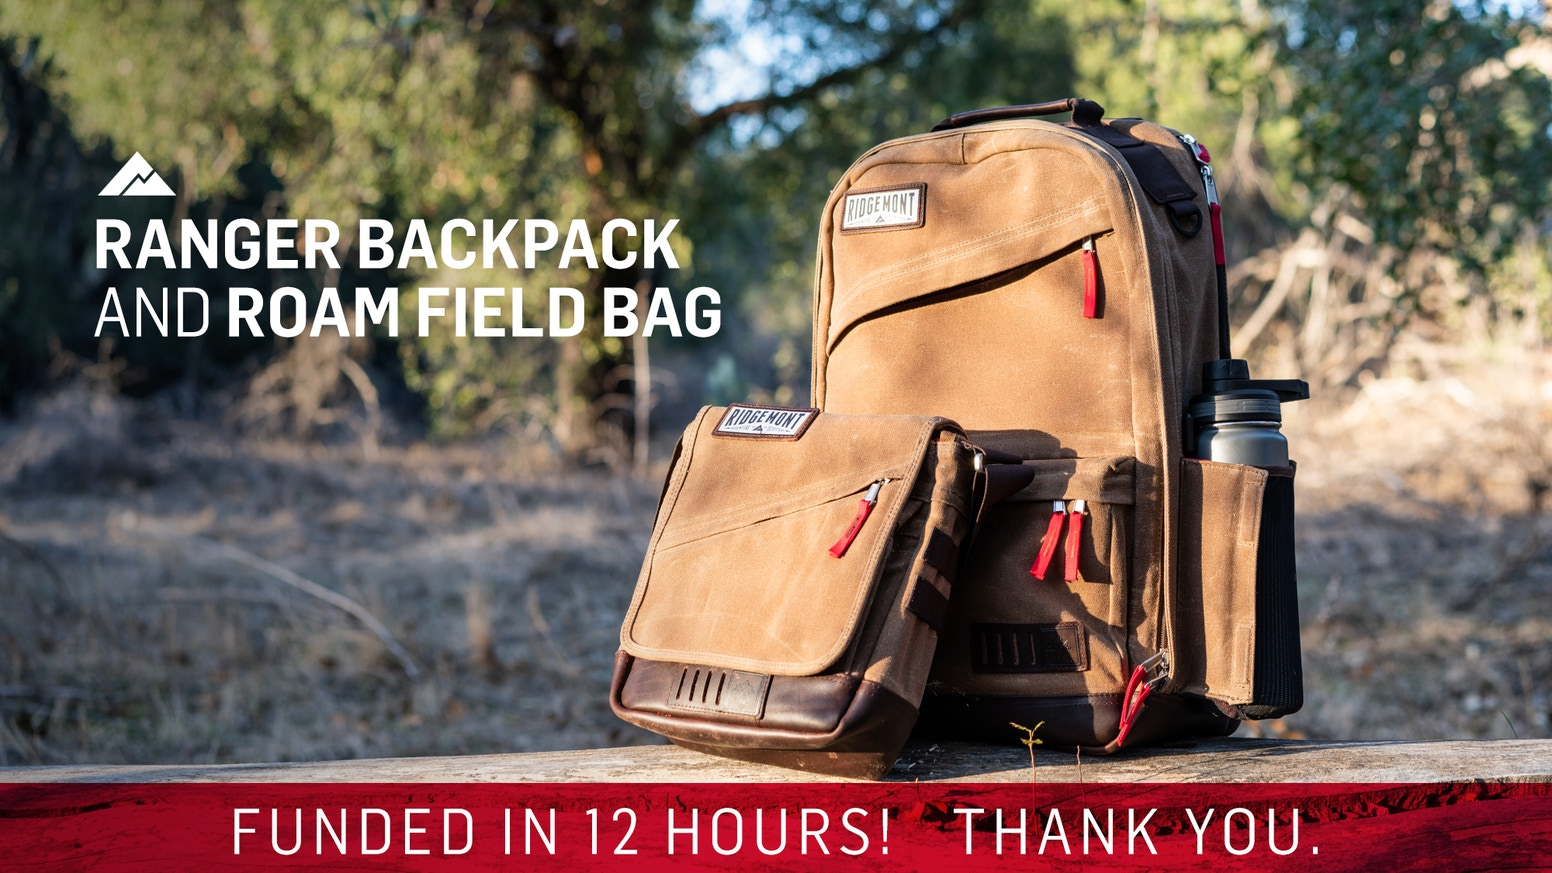 Backpack and field bag expertly crafted from waxed canvas and oiled leather.